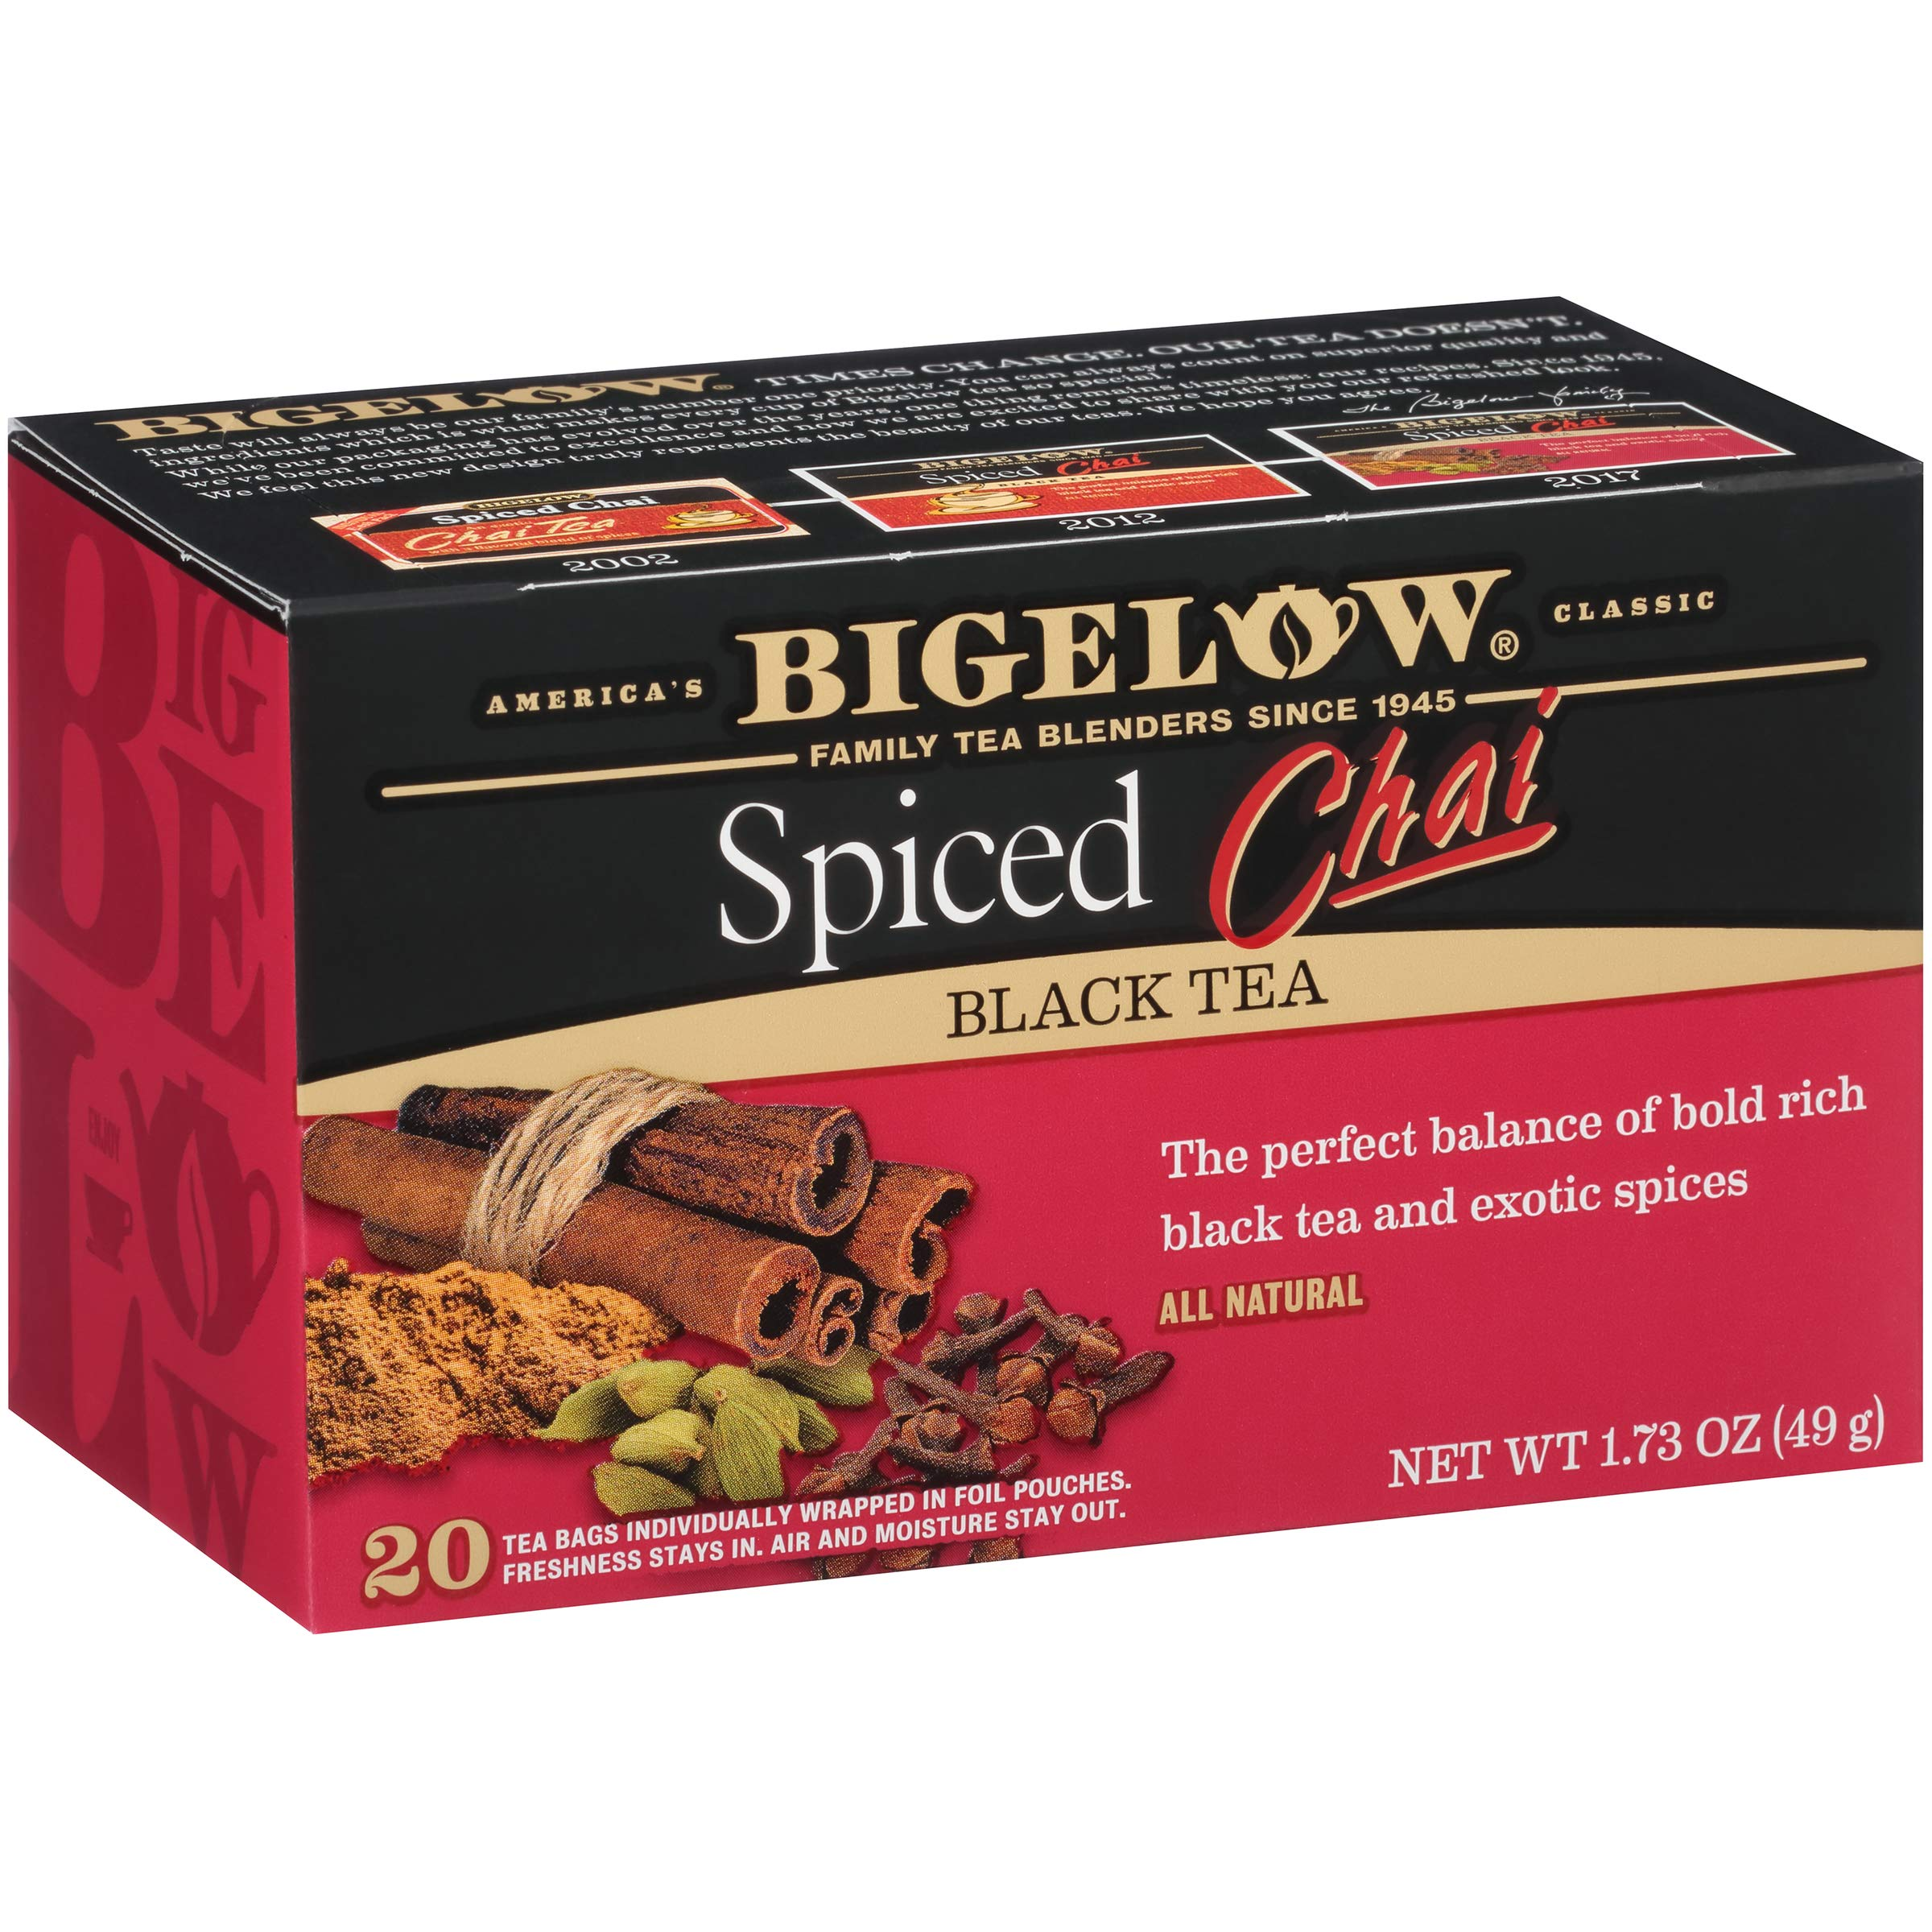 Bigelow Spiced Chai Tea 20 Bags (Pack of 6), 120 Tea Bags Total.  Caffeinated Individual Black Tea Bags, for Hot Tea or Iced Tea, Drink Plain or Sweetened with Honey or Sugar by Bigelow